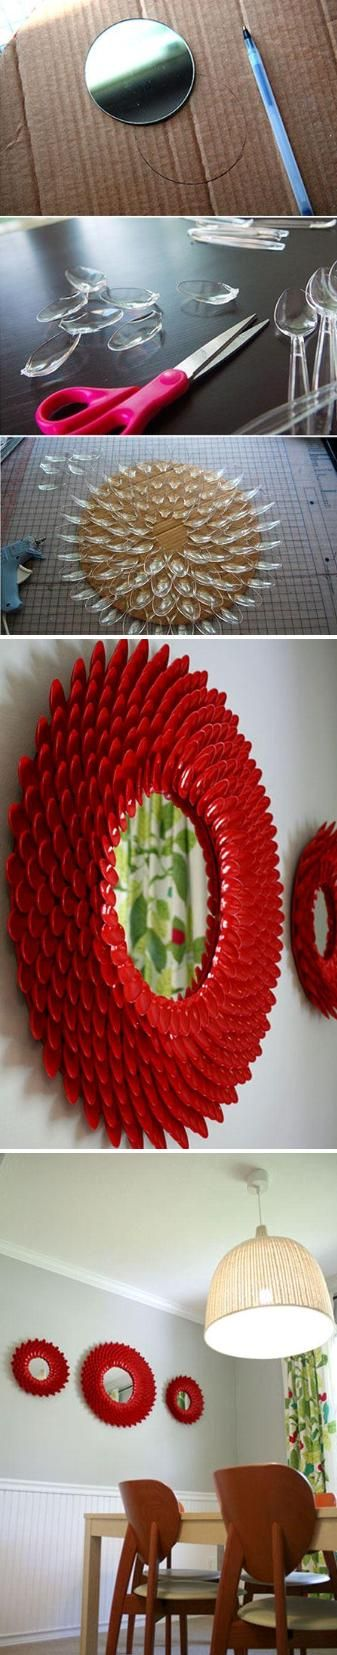 Make a  Mirror from Plastic Spoon: